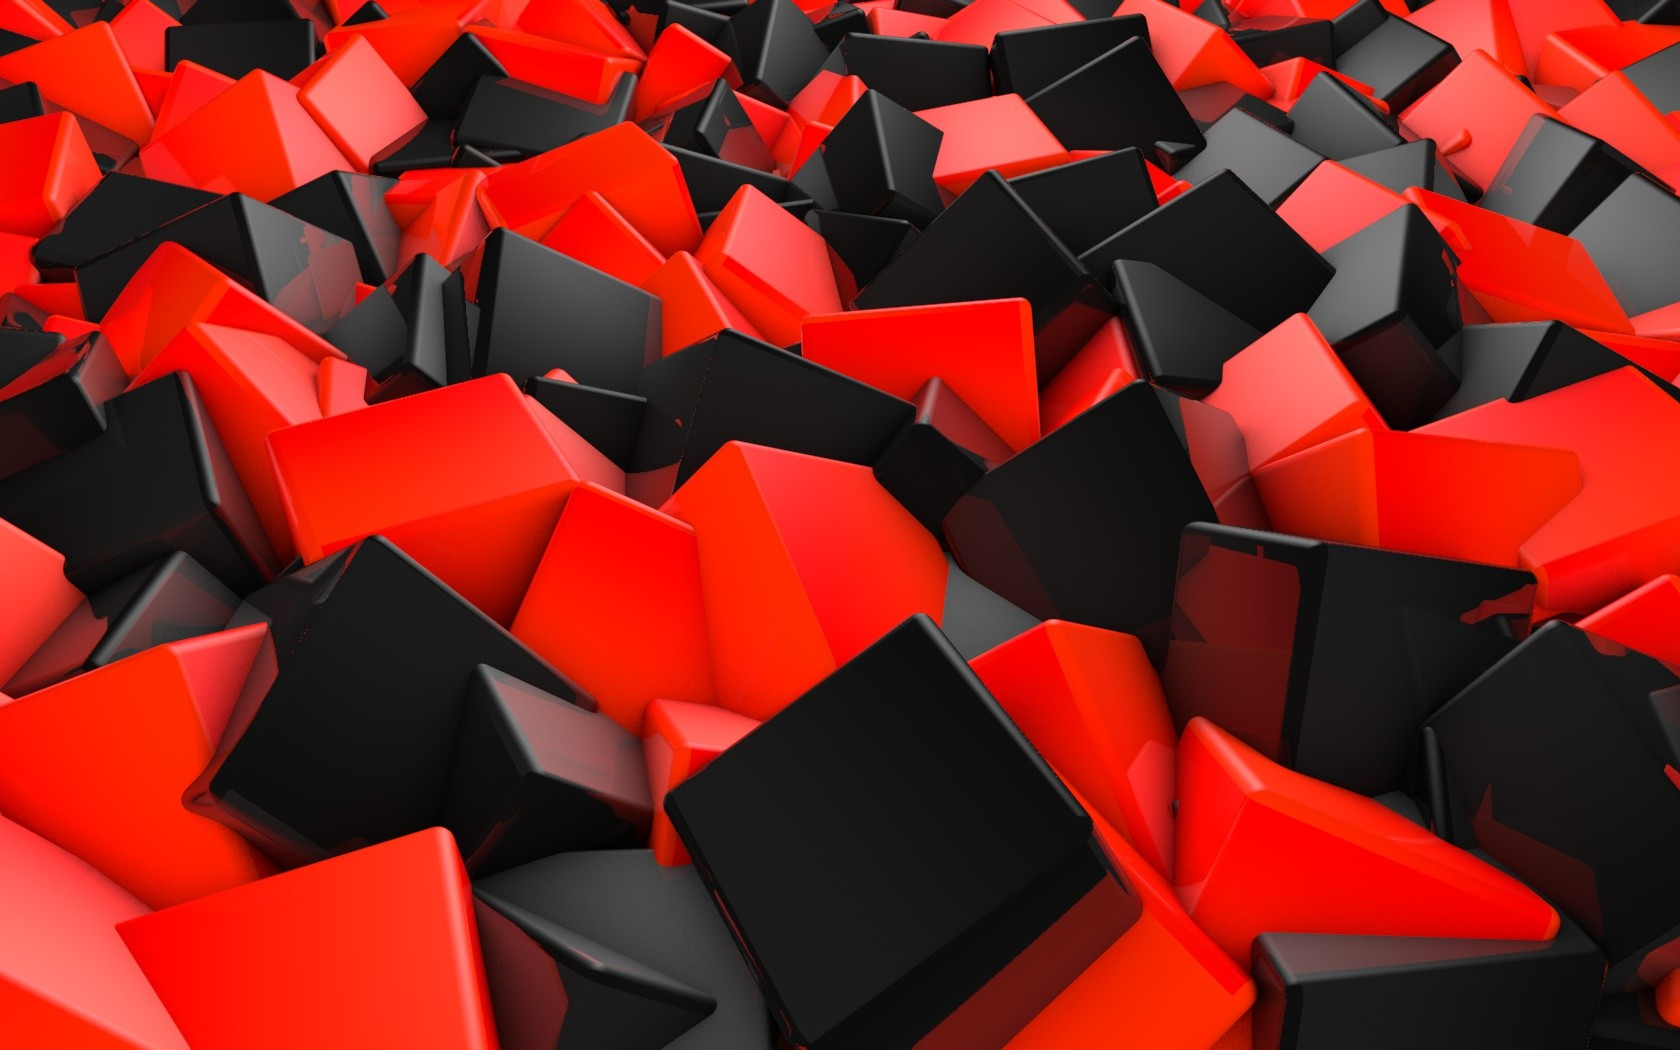 48 Abstract Red And Black Wallpaper On Wallpapersafari